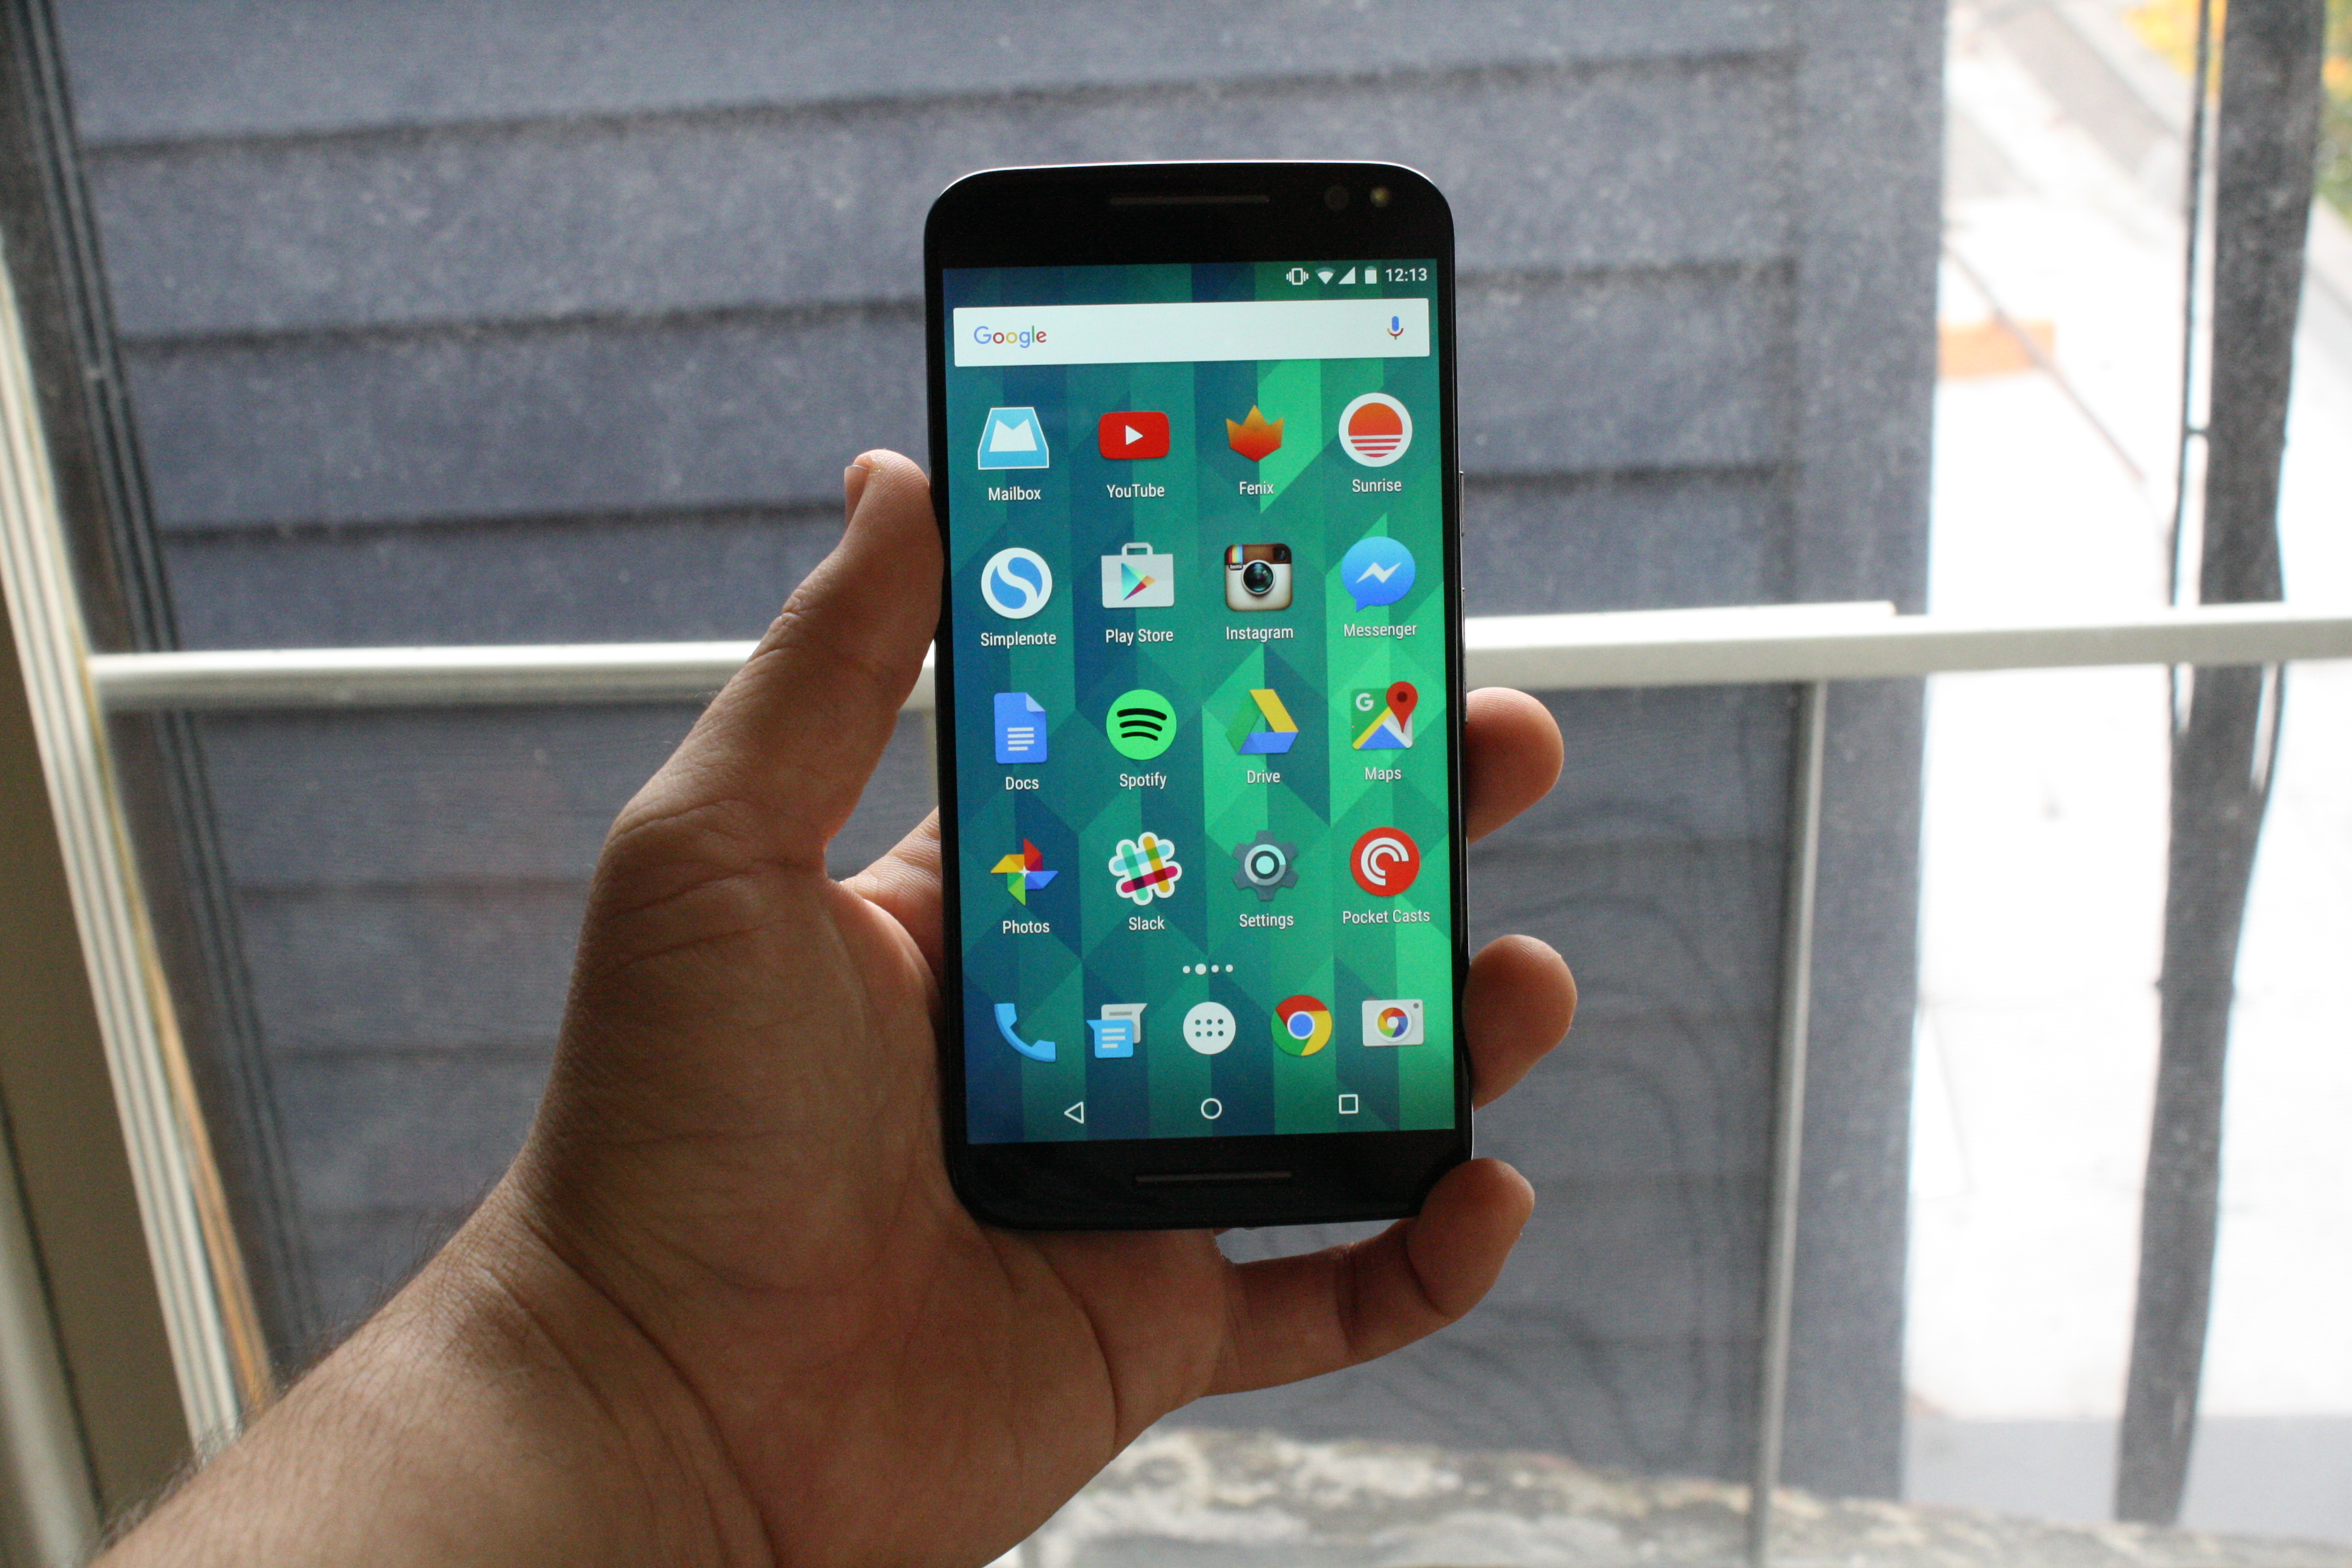 Phone Pure Android Phones moto x pure edition review android tech the software on is as near stock youll find outside of nexus devices which a really good thi